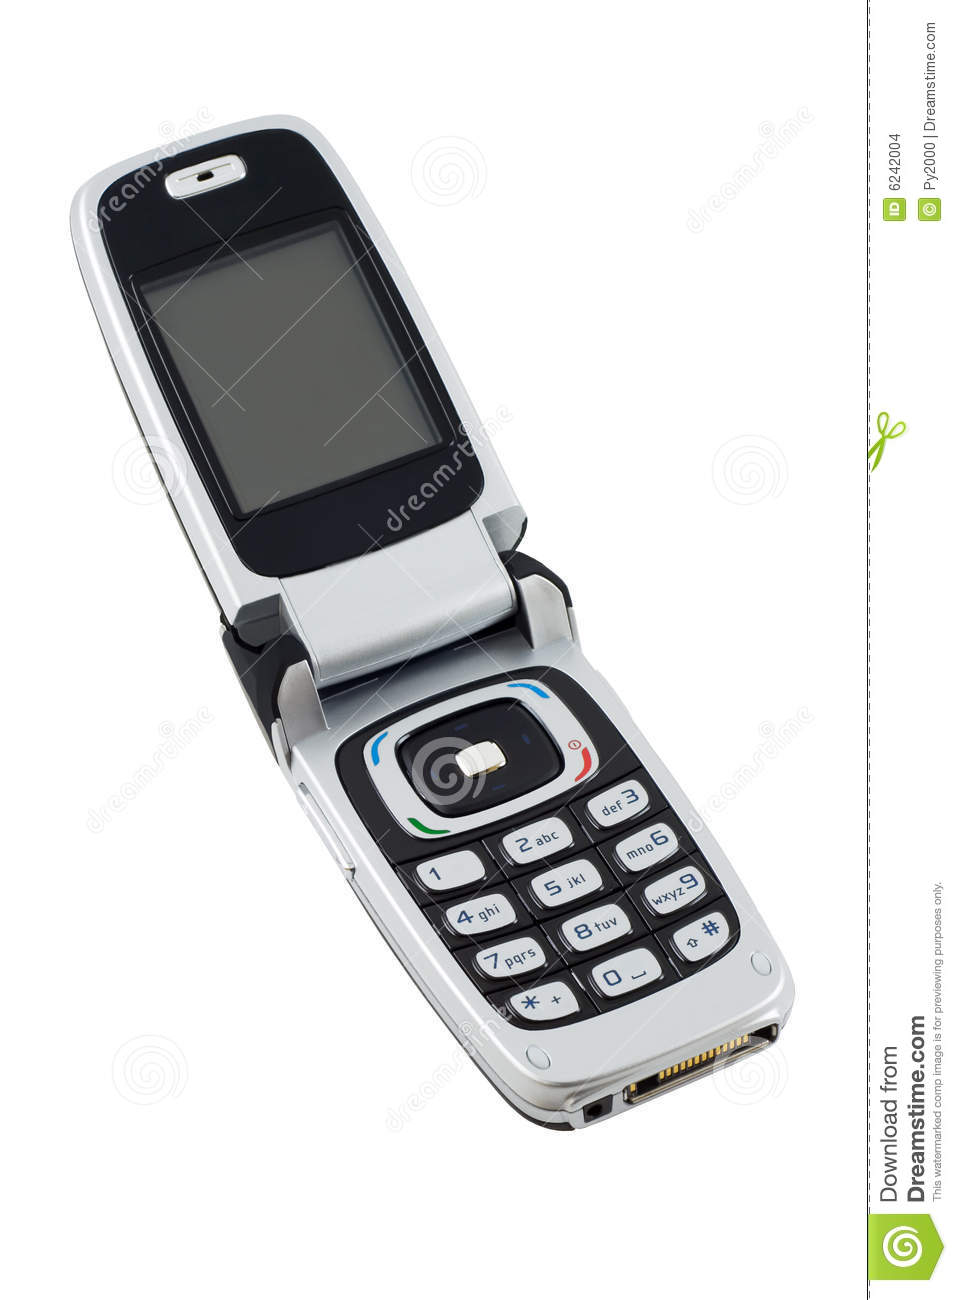 Cell Phone stock photo. Image of clipping, calling ...Old Cell Phone Clip Art